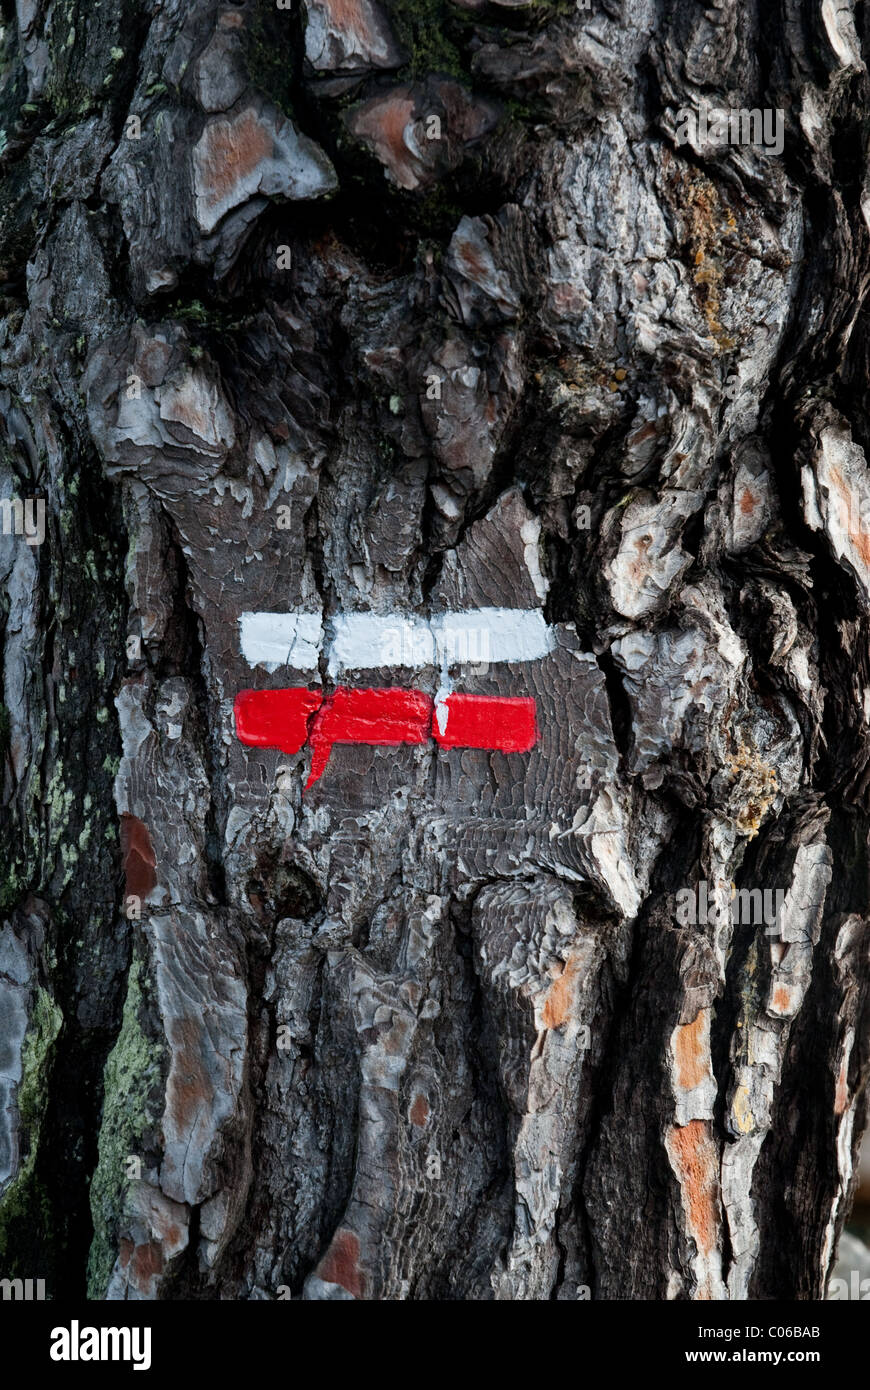 A sign for one of the major walks, Grand Randonnee, across France. The sign, on a pine tree,is red and while - Stock Image